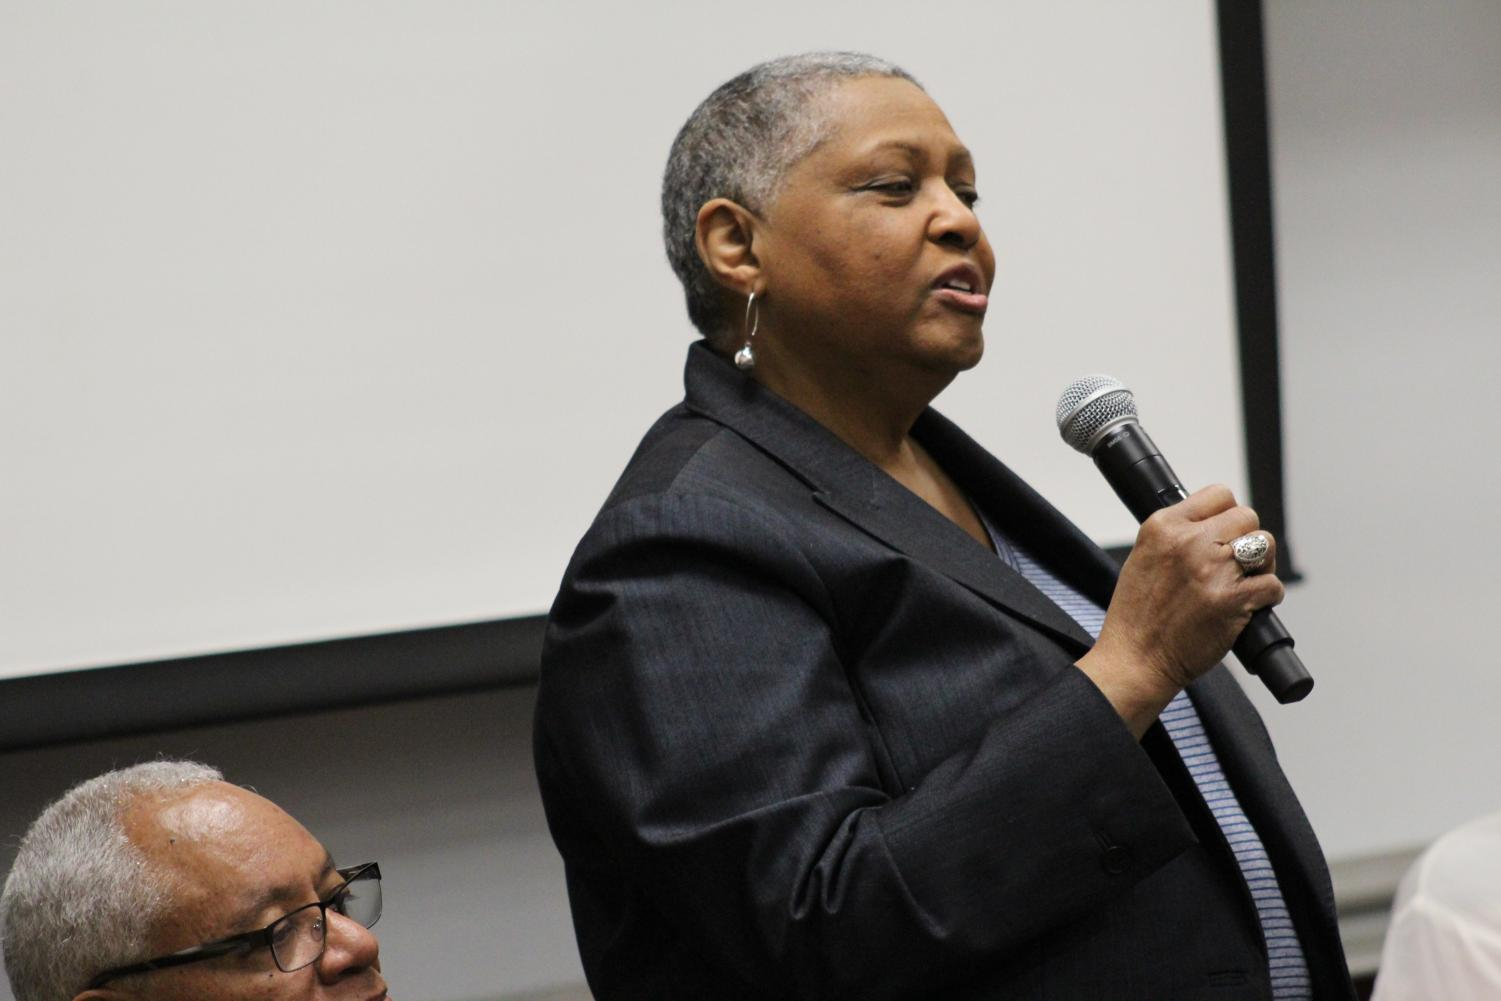 Barbara Fuller ('72) speaking during  a panel discussion as part of the BSU 50th events.